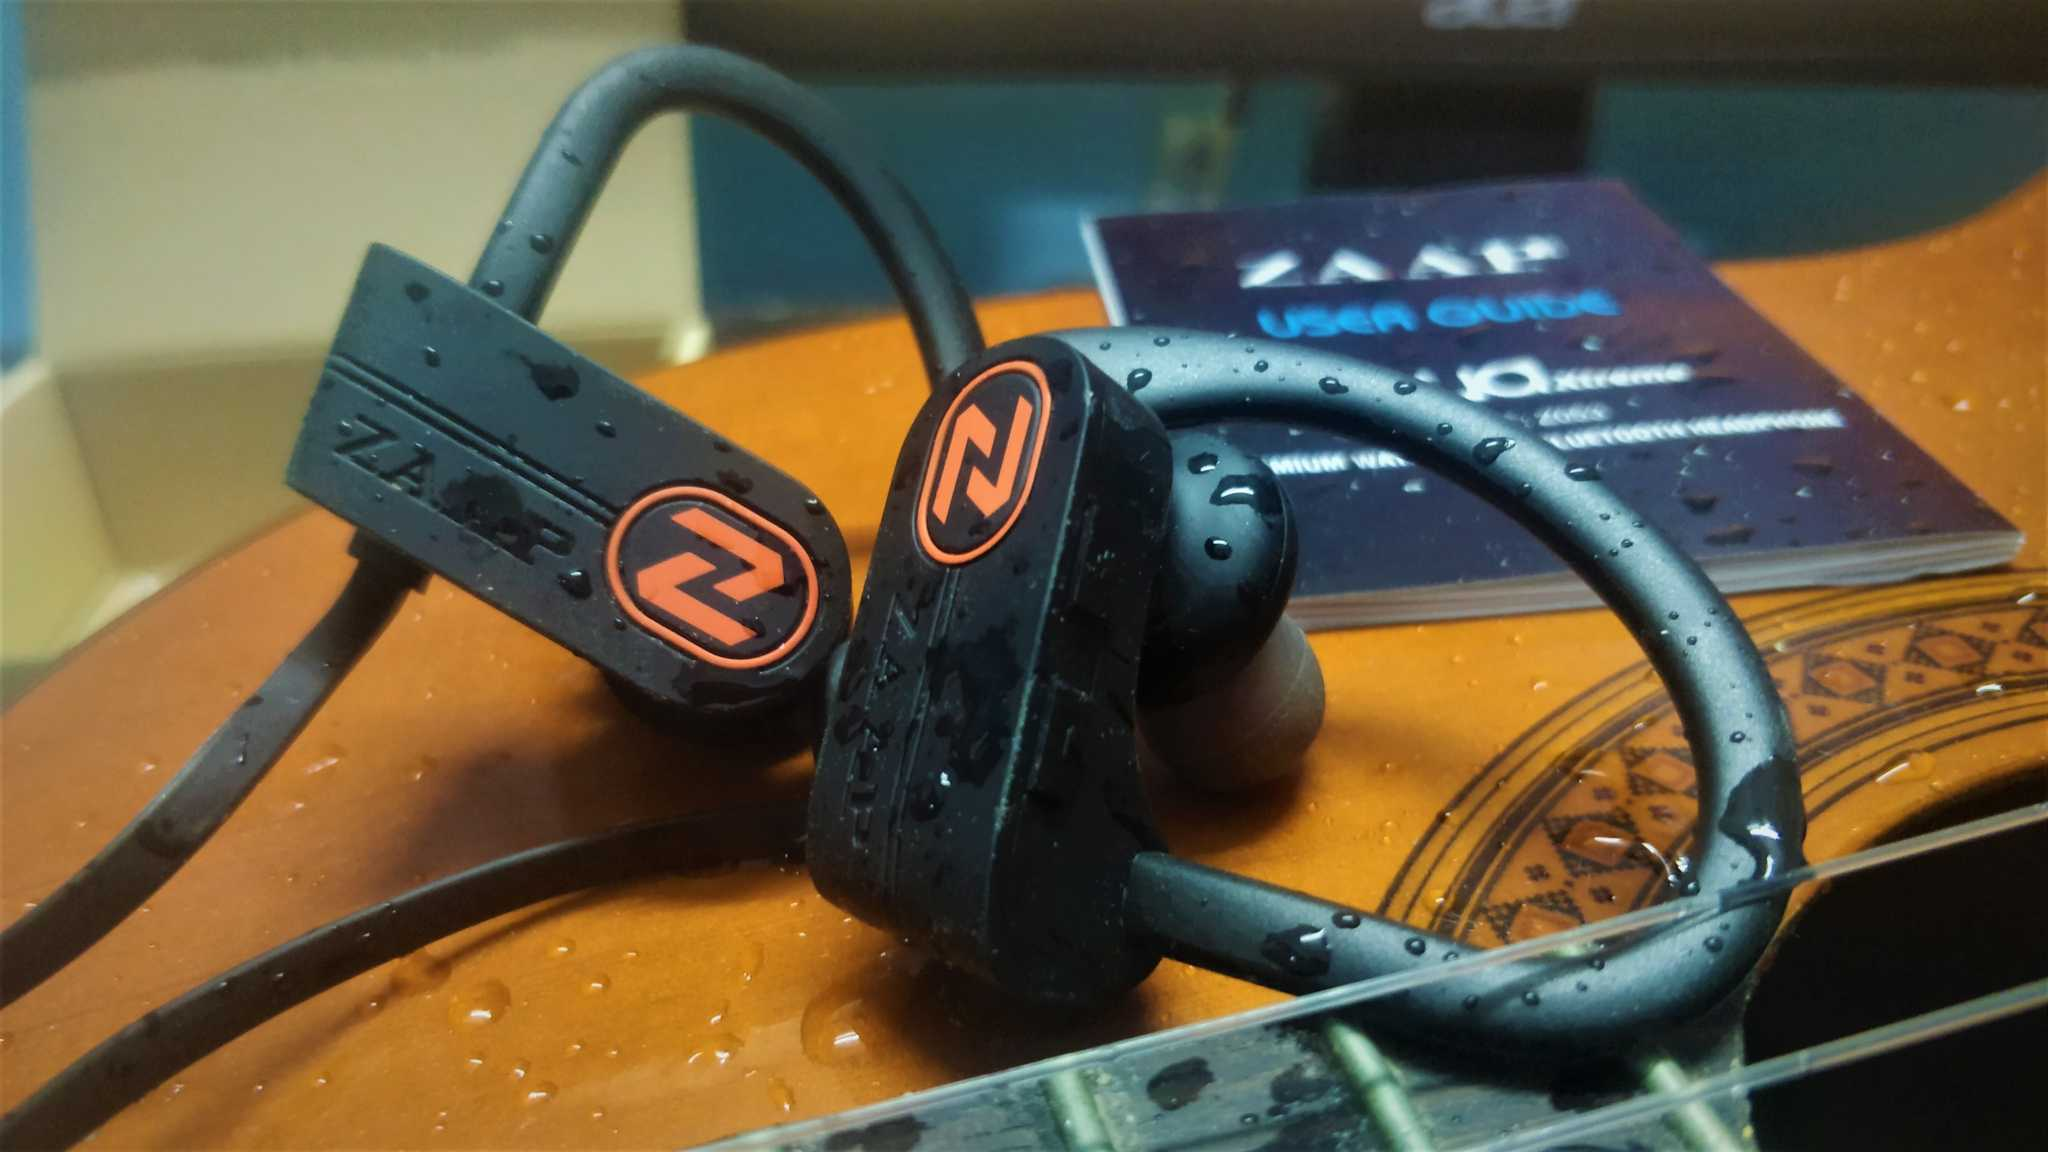 Aqua Xtreme headphone review